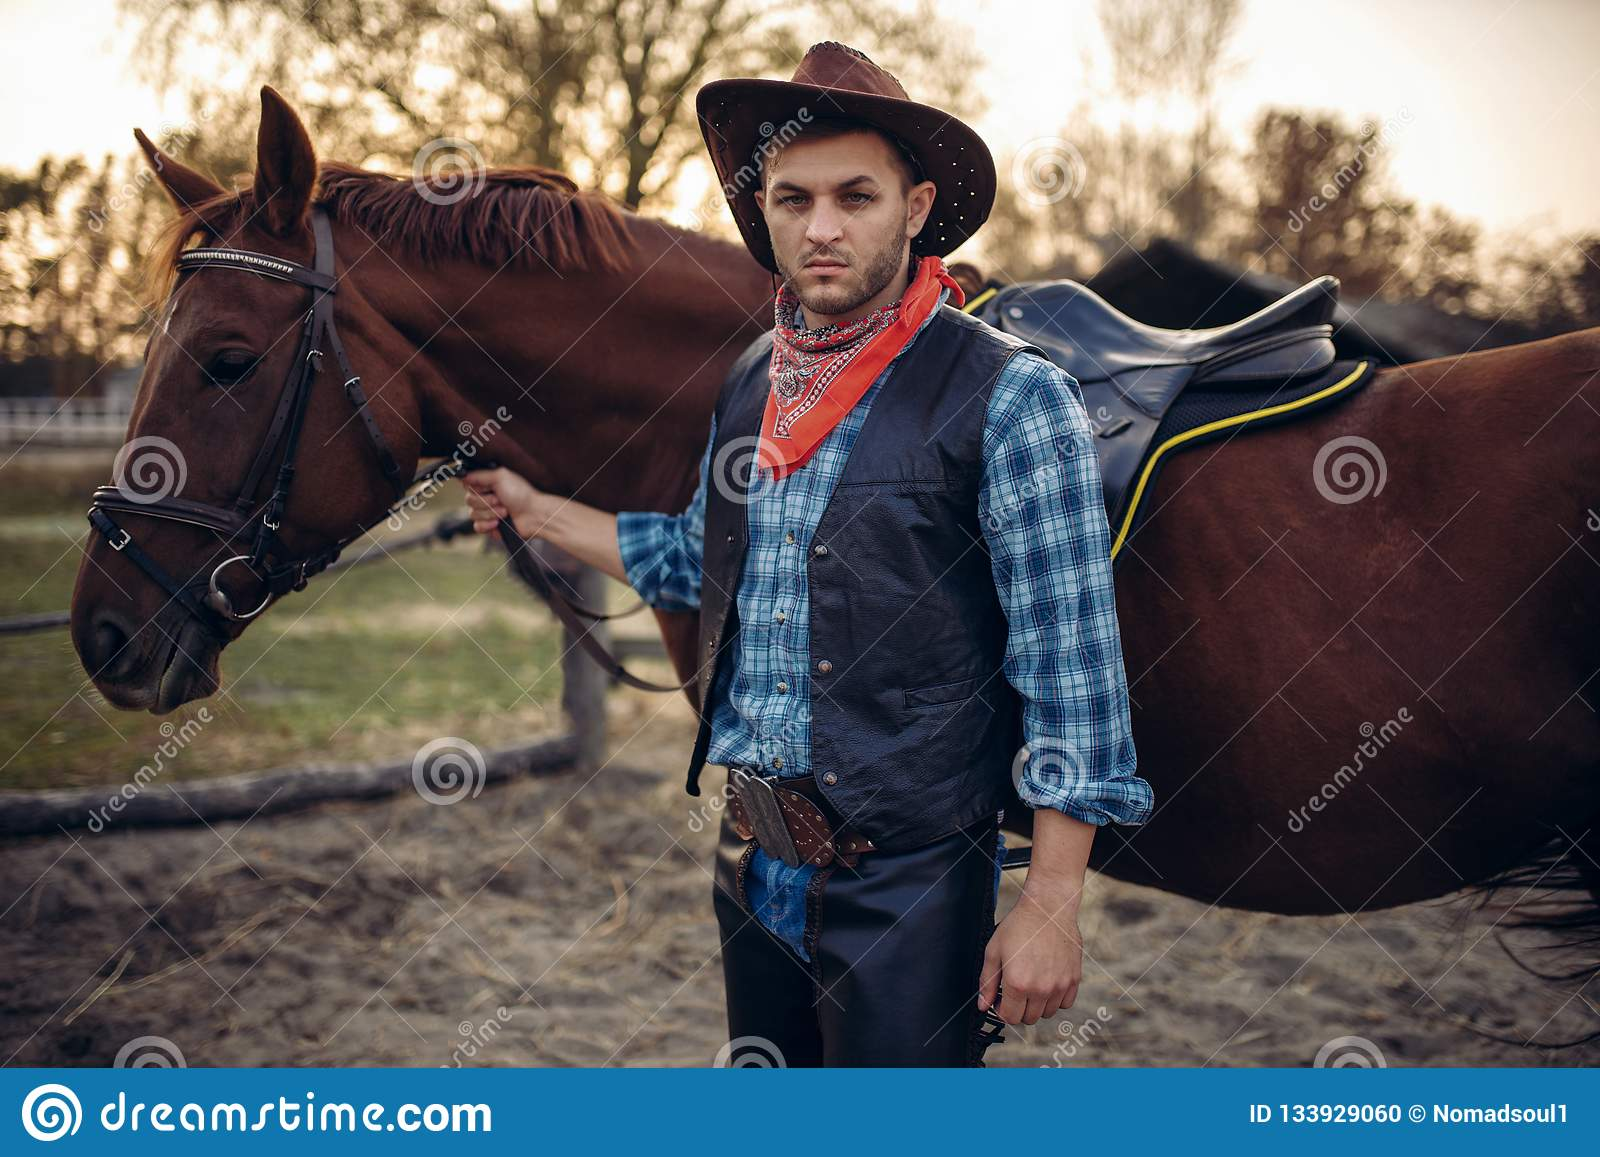 Brutal Cowboy Poses With Horse Wild West Stock Photo Image Of Retro Horse 133929060